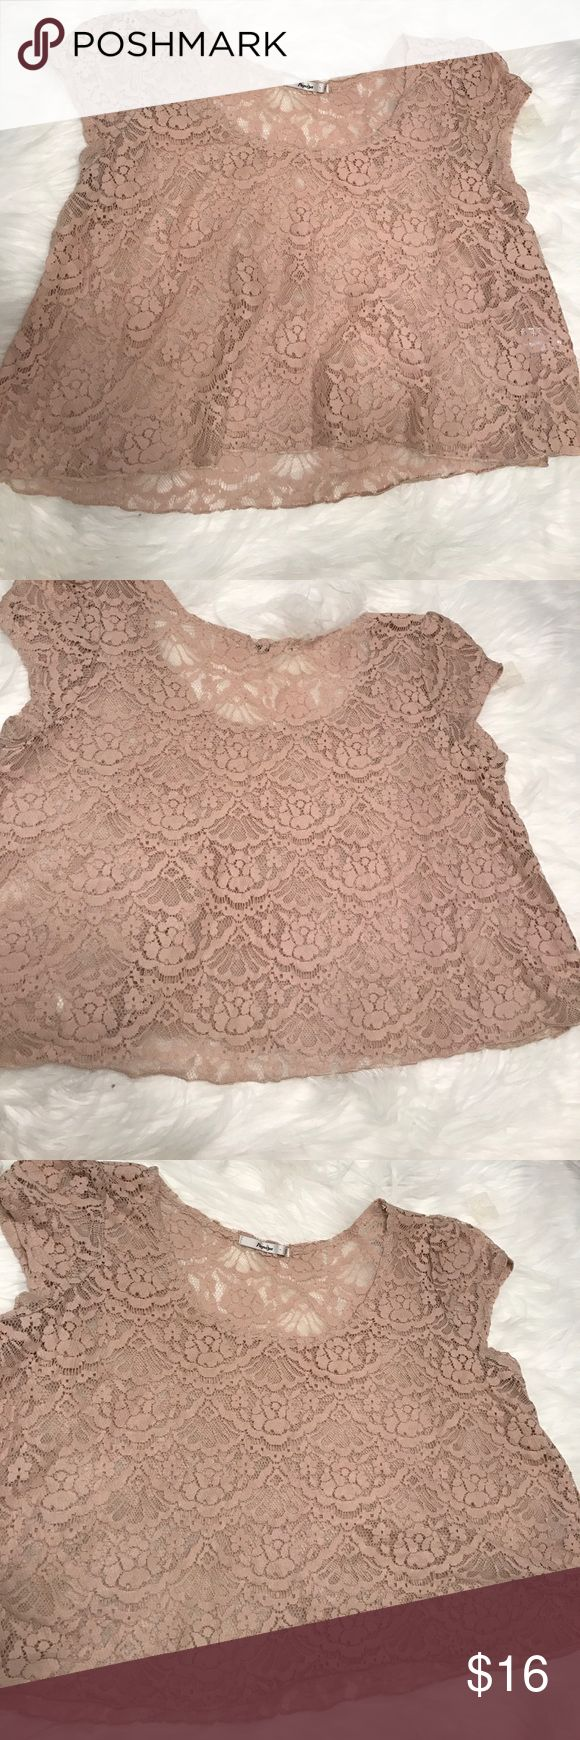 Papaya Nude Lace short sleeve top Nude lace shirt from papaya. Crop style. Size large measurements: 20.5 inches bust. 18 inches length. New without a tag. Papaya Tops Crop Tops